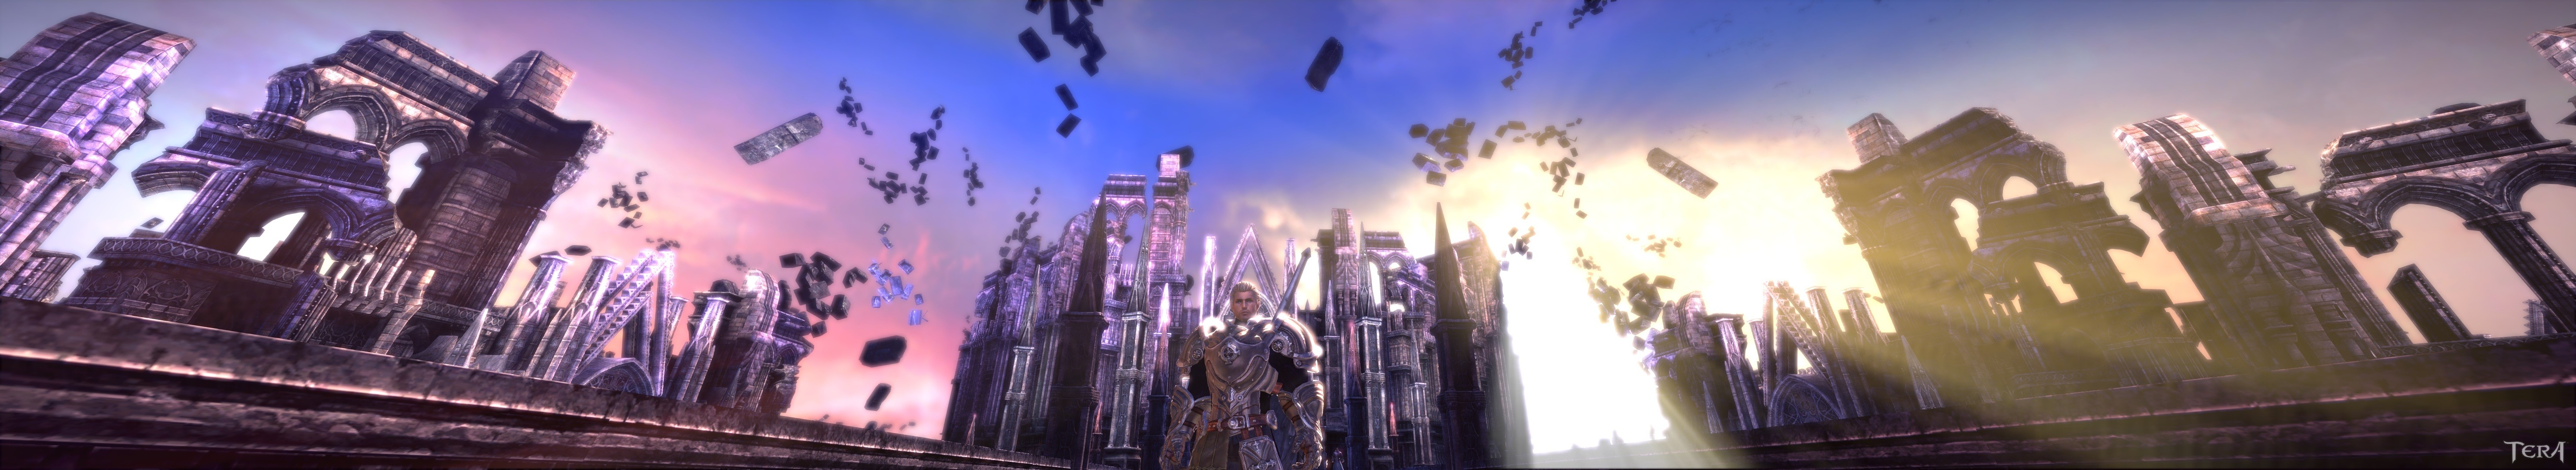 TERA - Just got eyefinity, holy hell is it amazing!